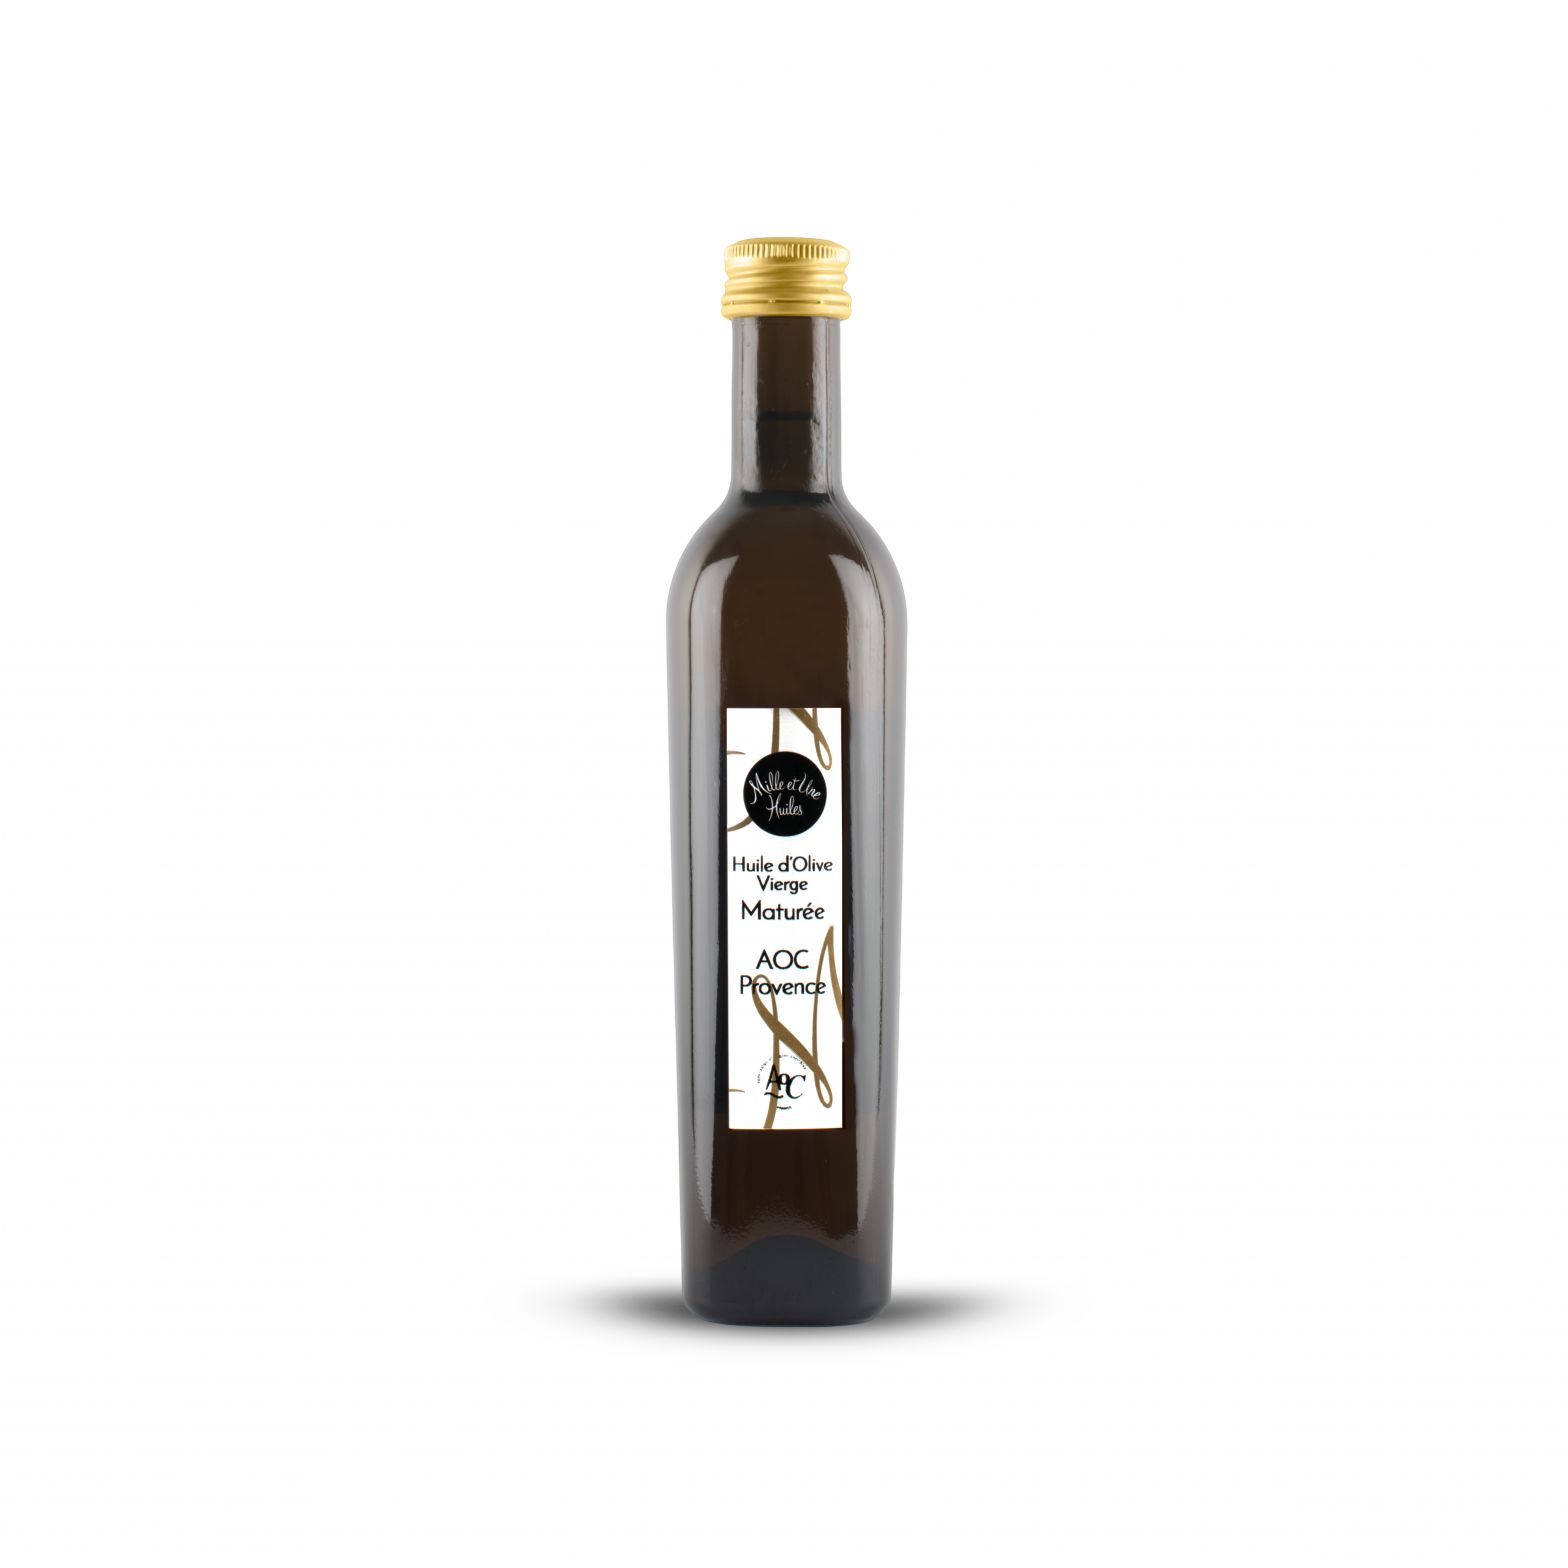 Virgin olive oil Matured selection, AOC Provence, France,